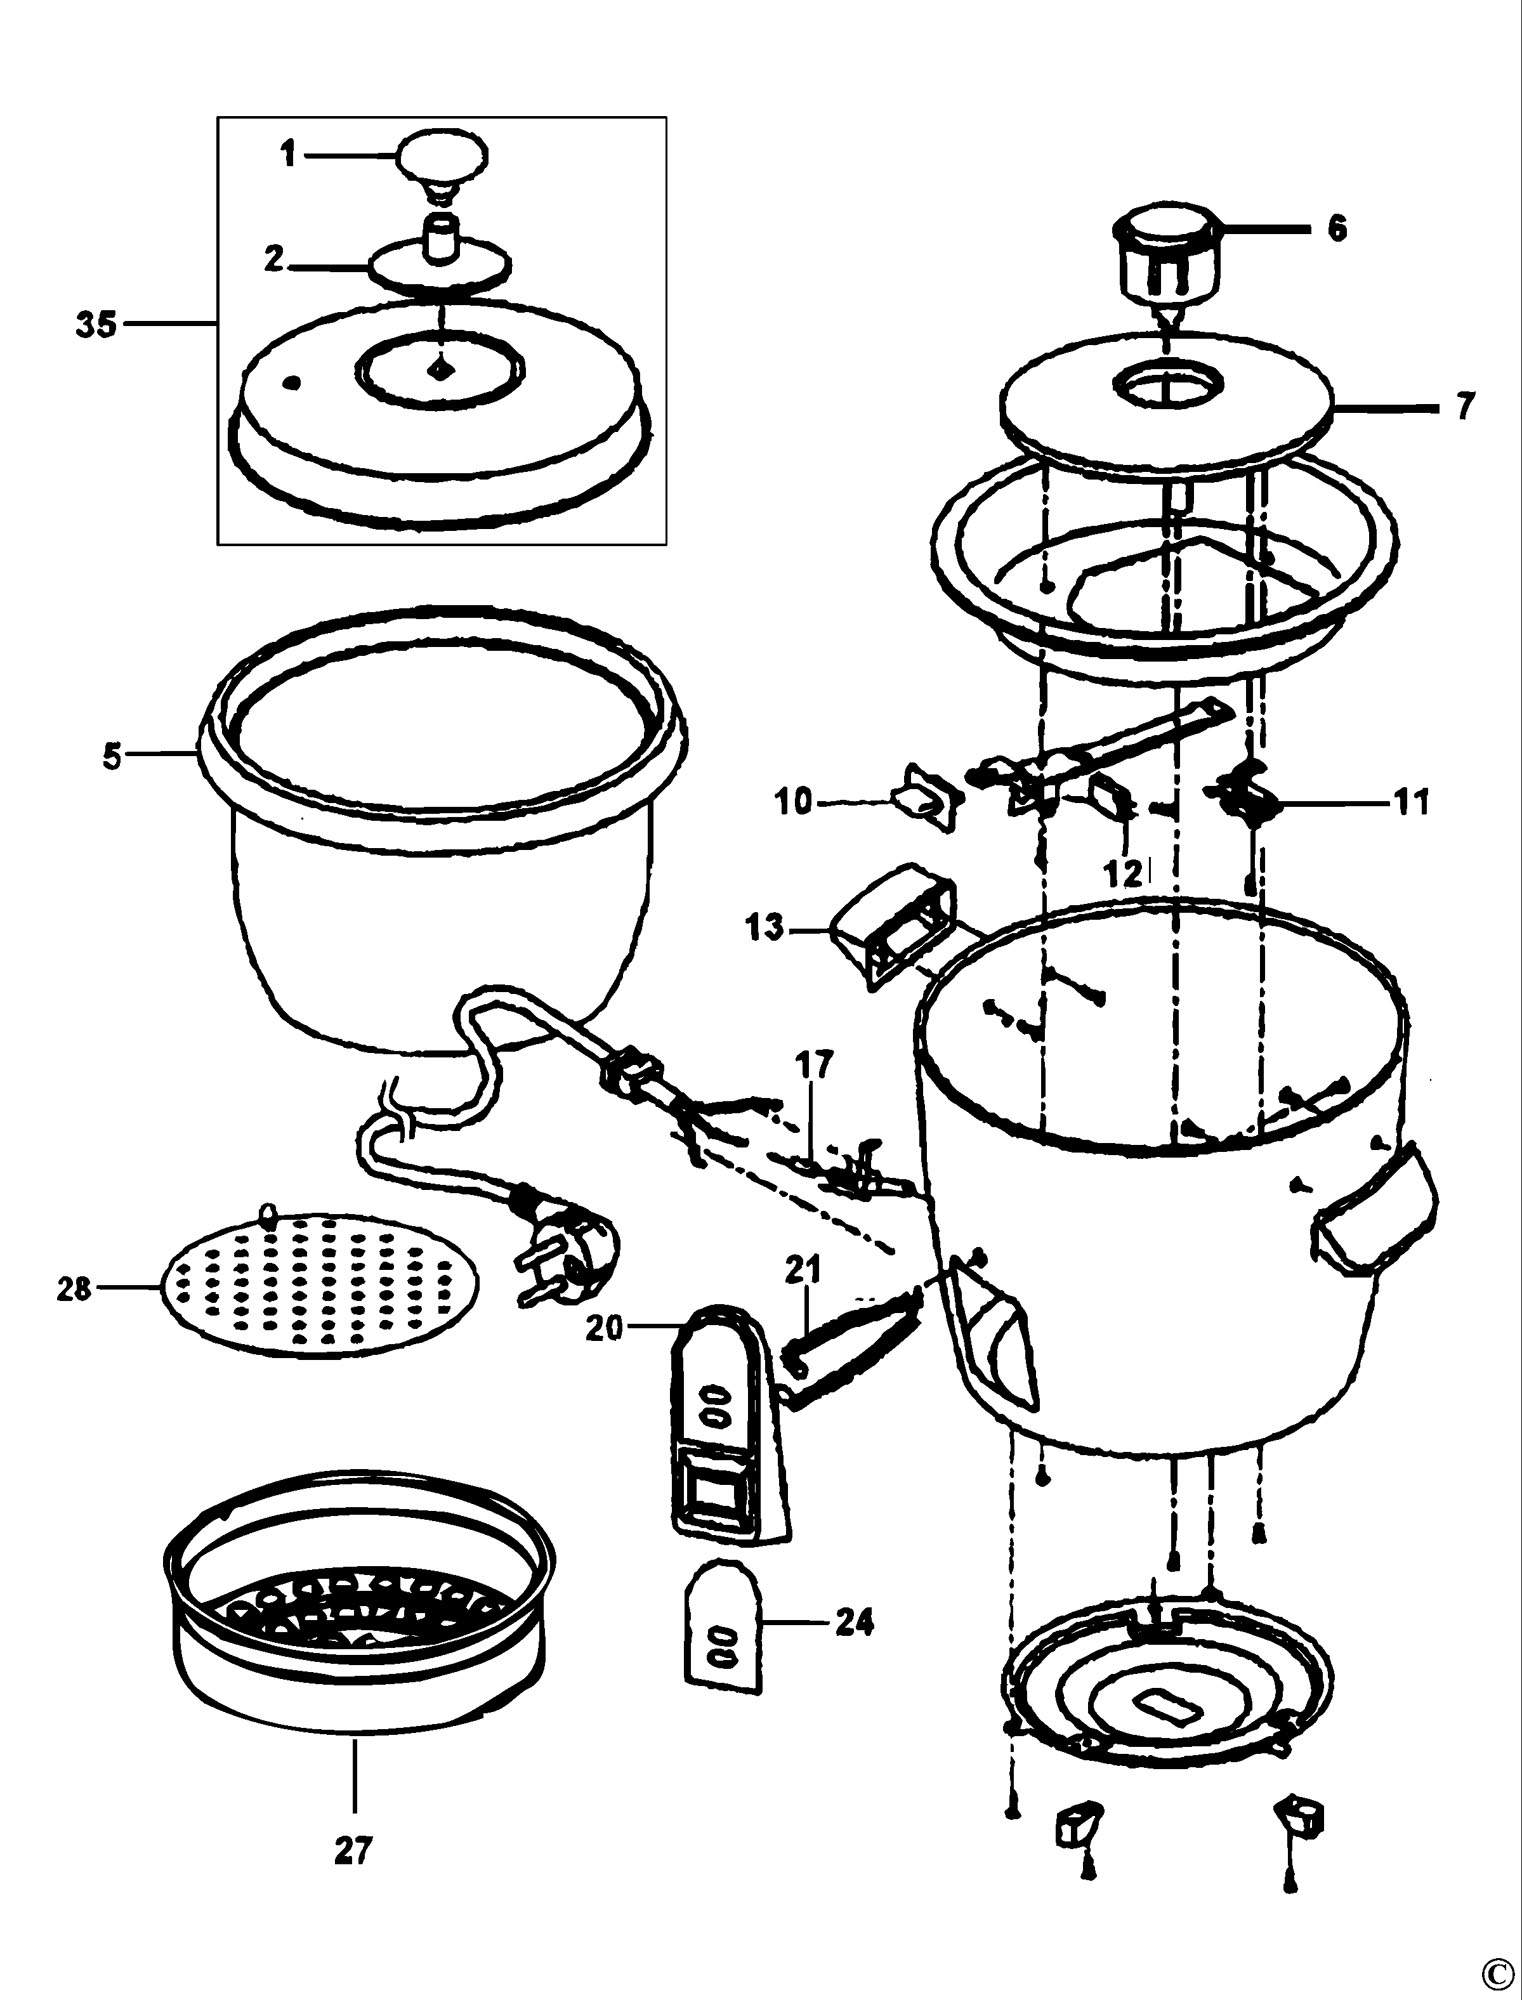 spares for black  u0026 decker rc32 rice cooker  type 1  spare rc32  type 1 from power tool centre